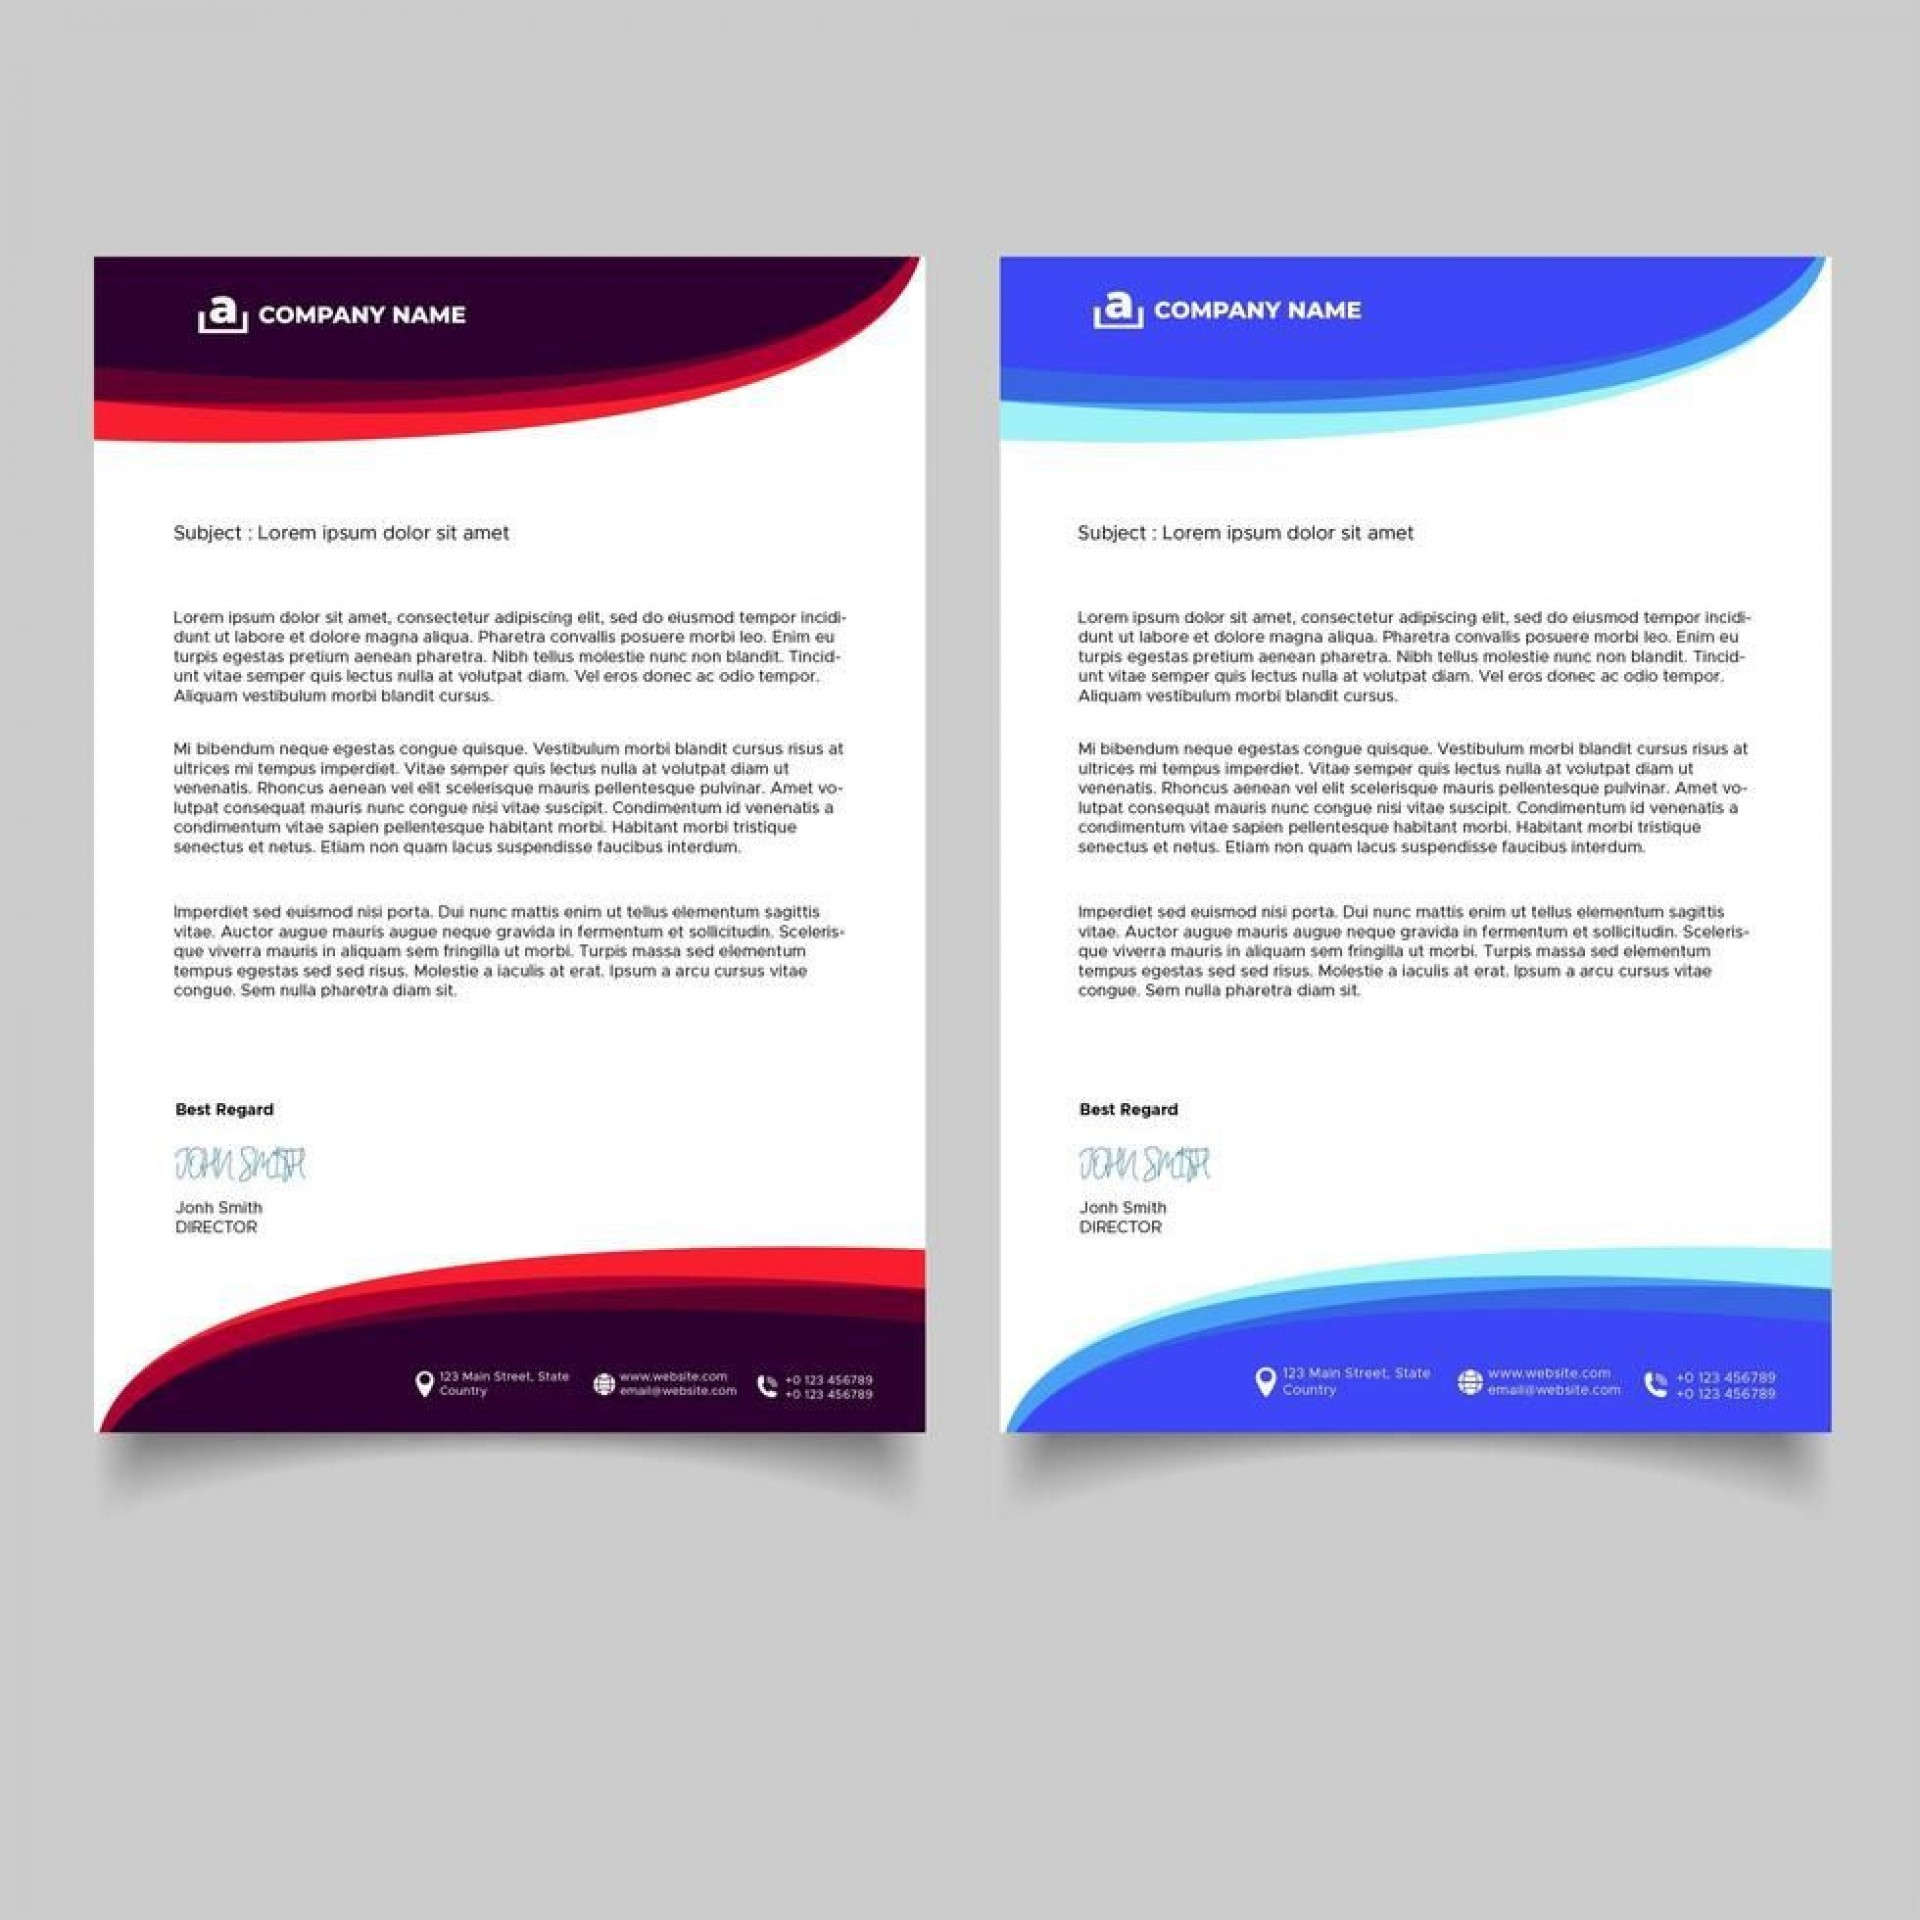 009 Imposing Letterhead Sample Free Download Highest Quality  Construction Company Template1920